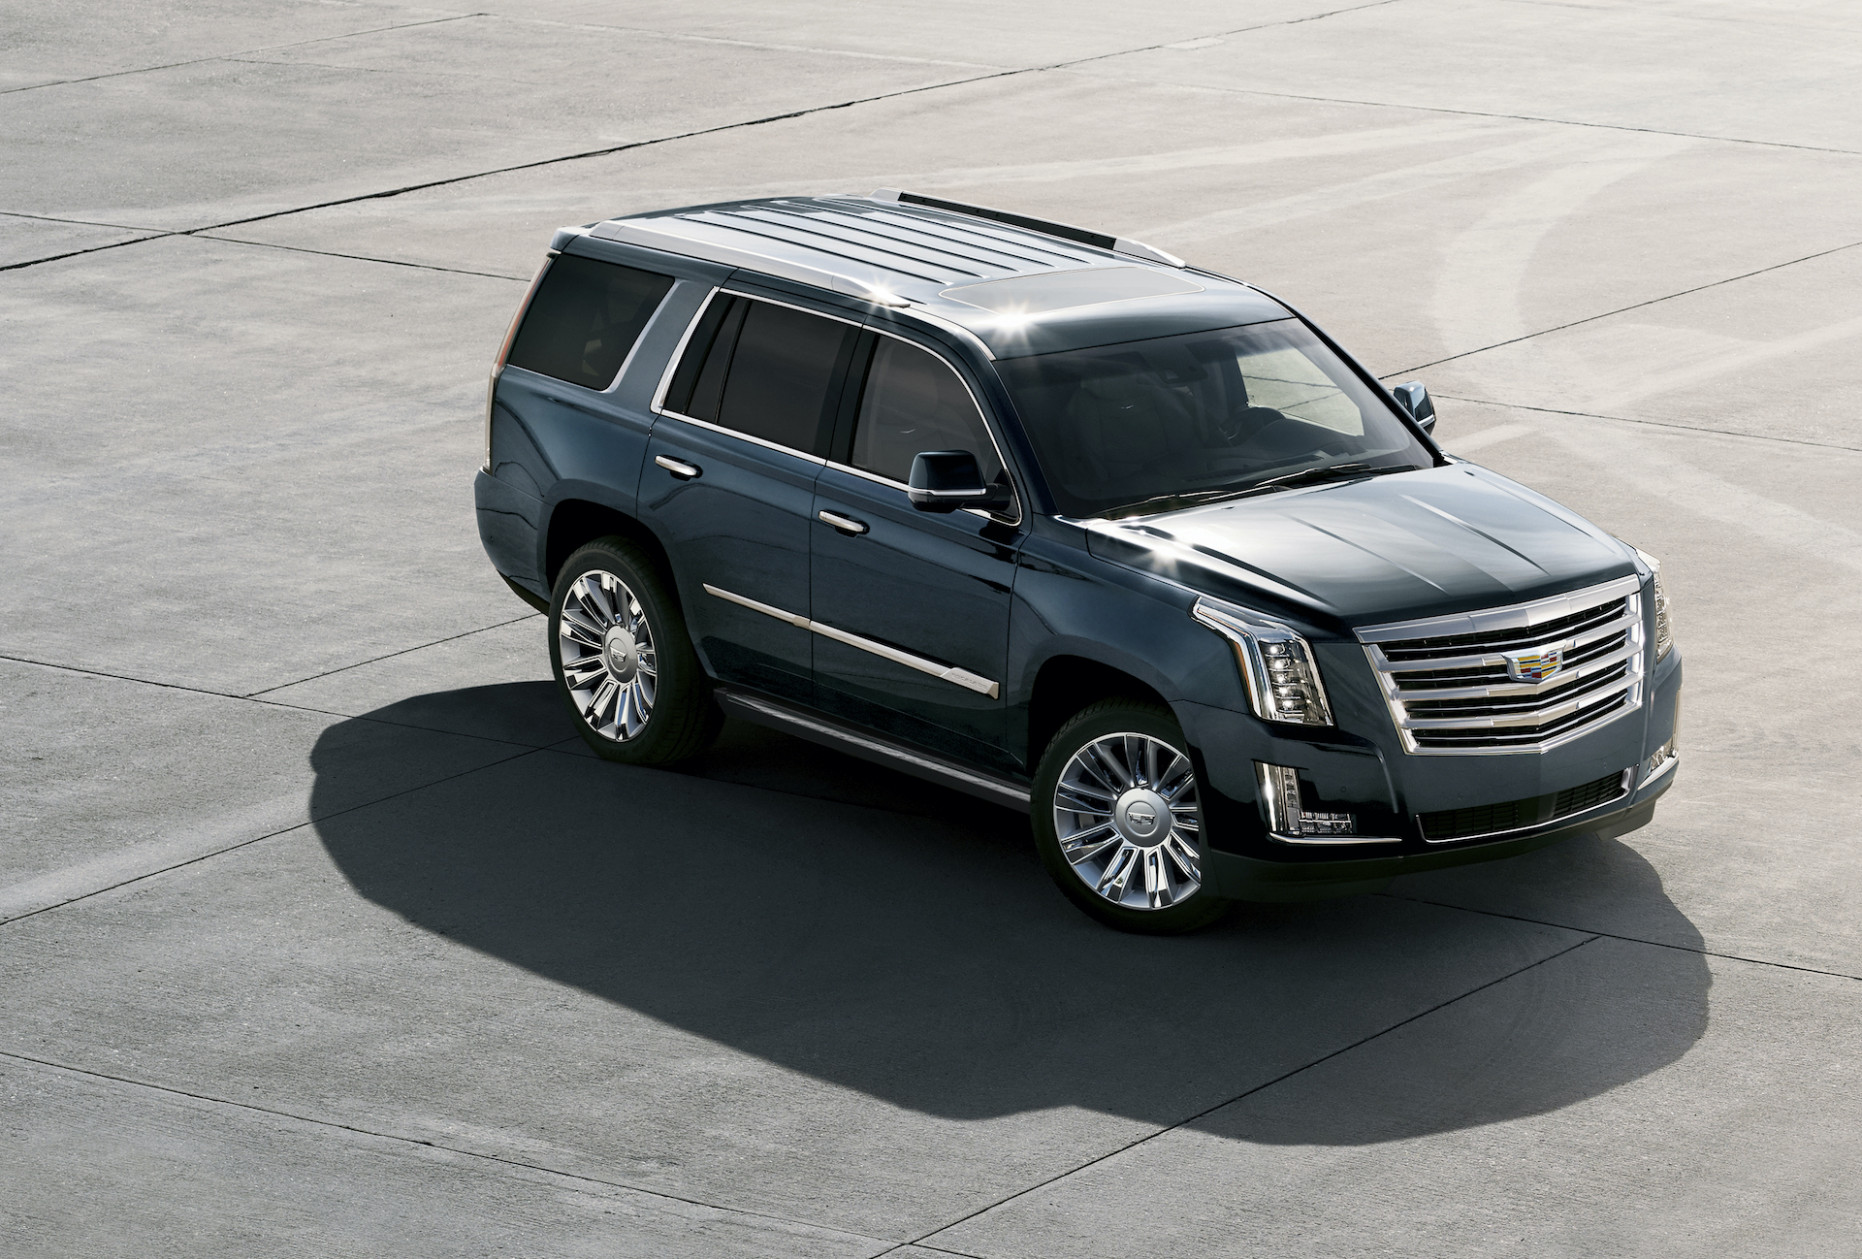 6 Cadillac Escalade Review, Ratings, Specs, Prices, and Photos ...